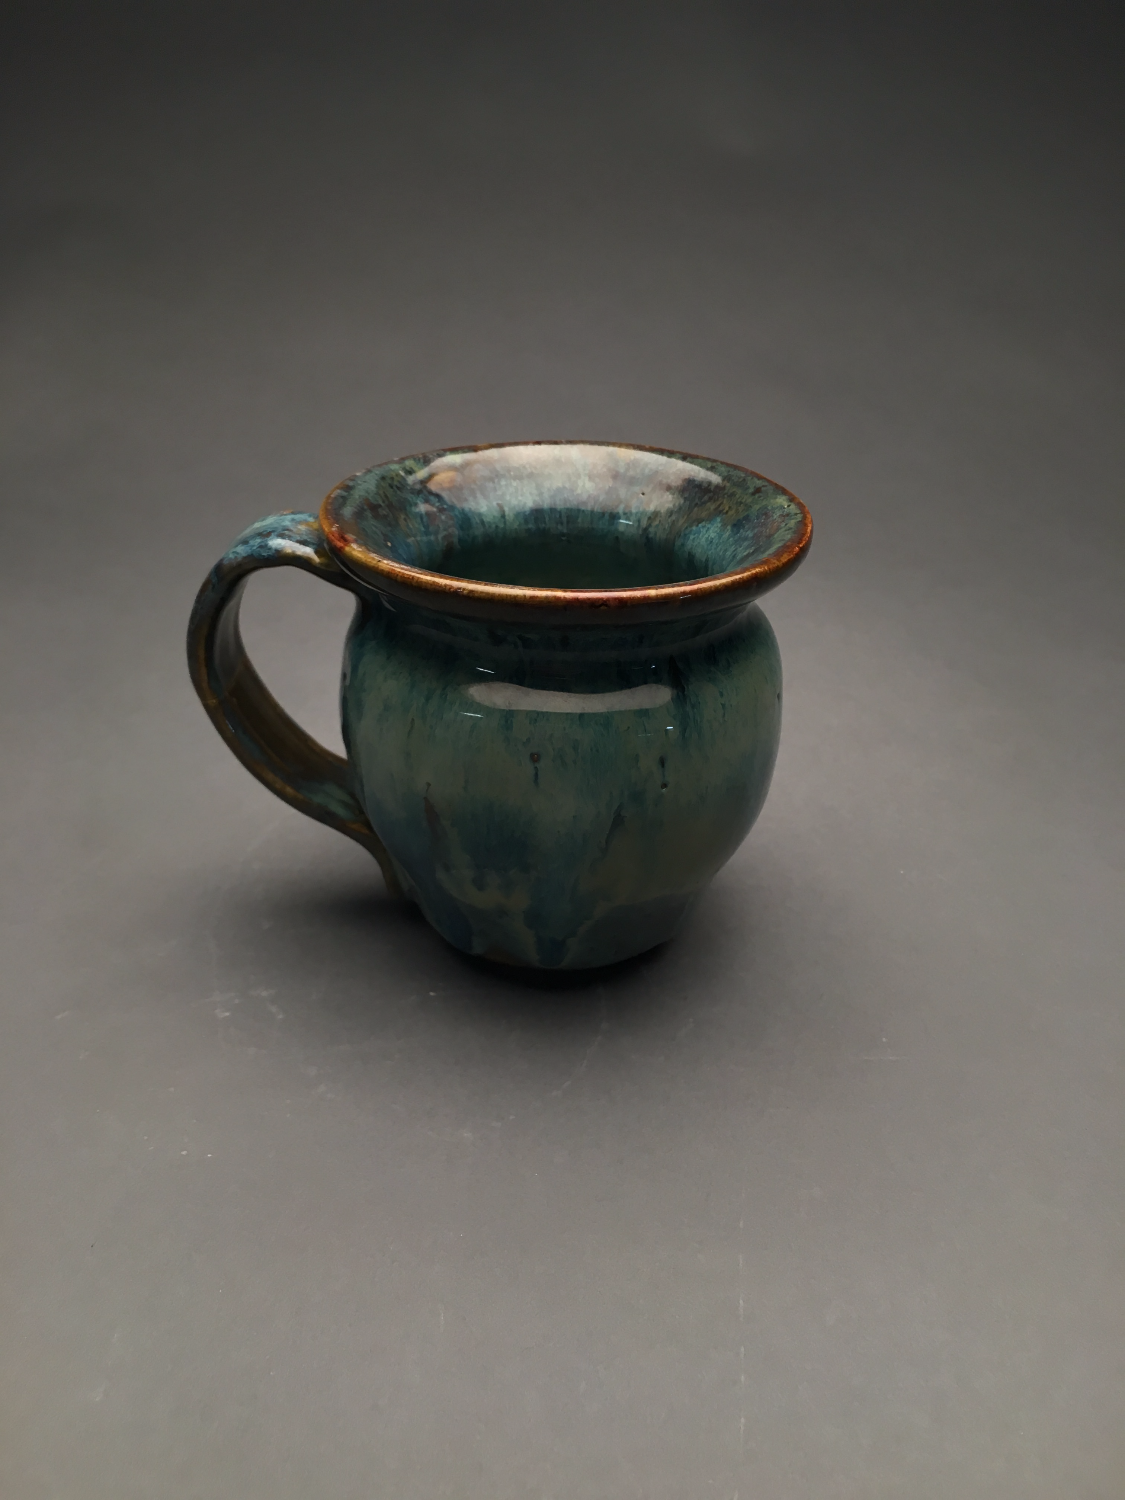 1 of 4 thrown mugs